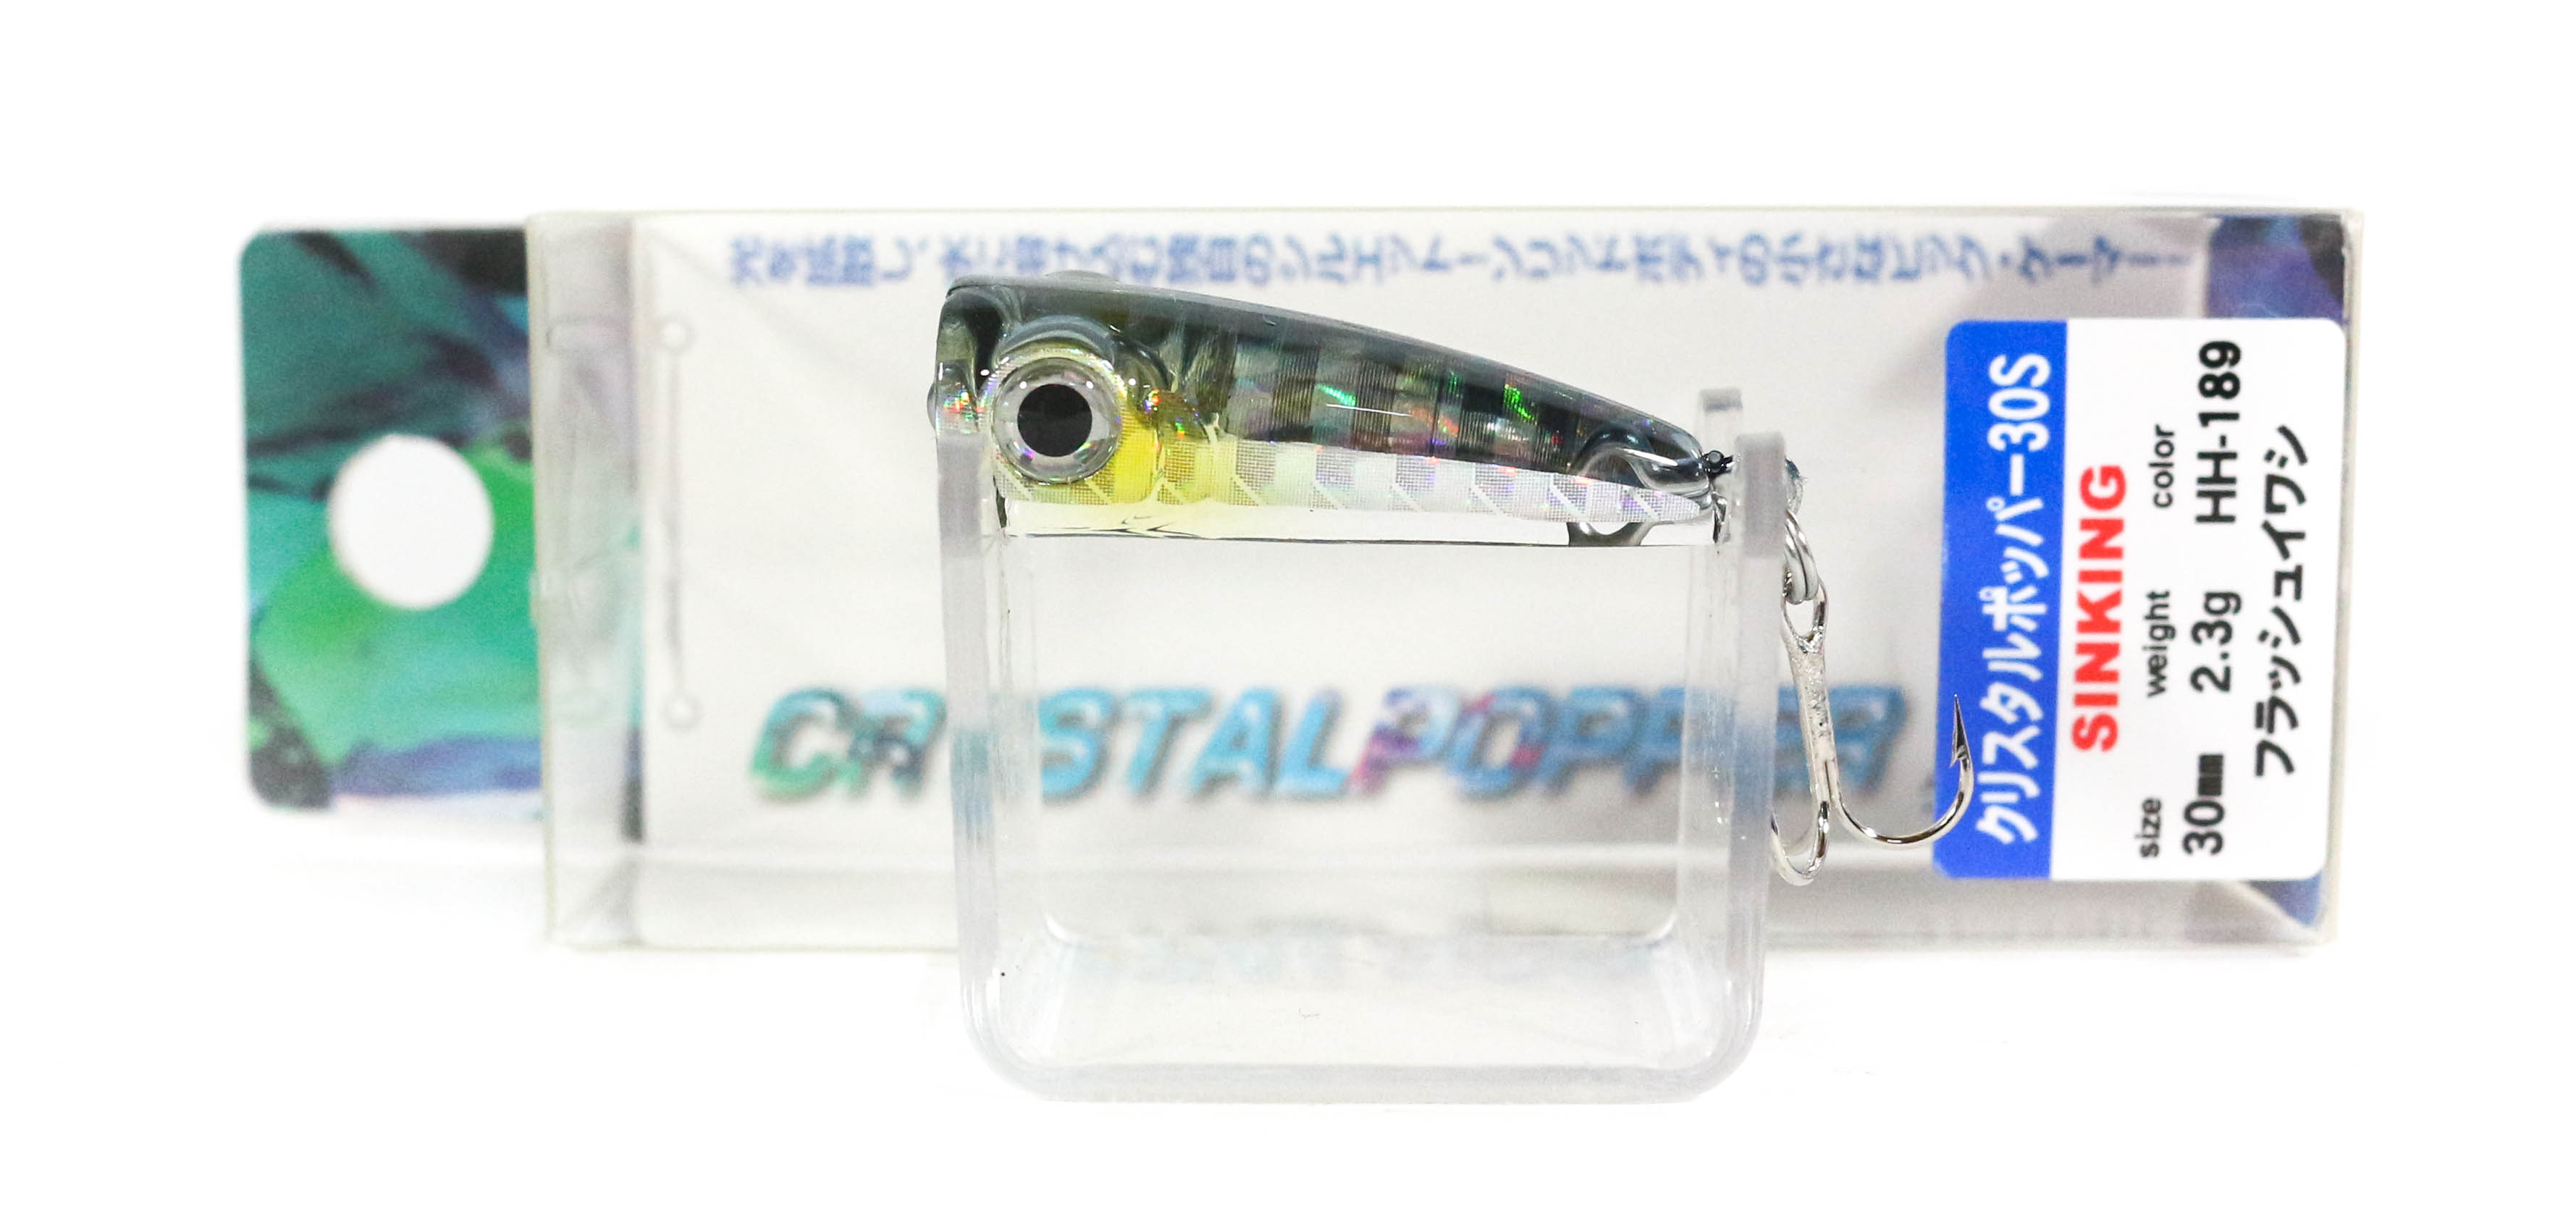 Bassday Crystal Popper 30S Sinking Lure 2.3 grams HH-189 (1233)